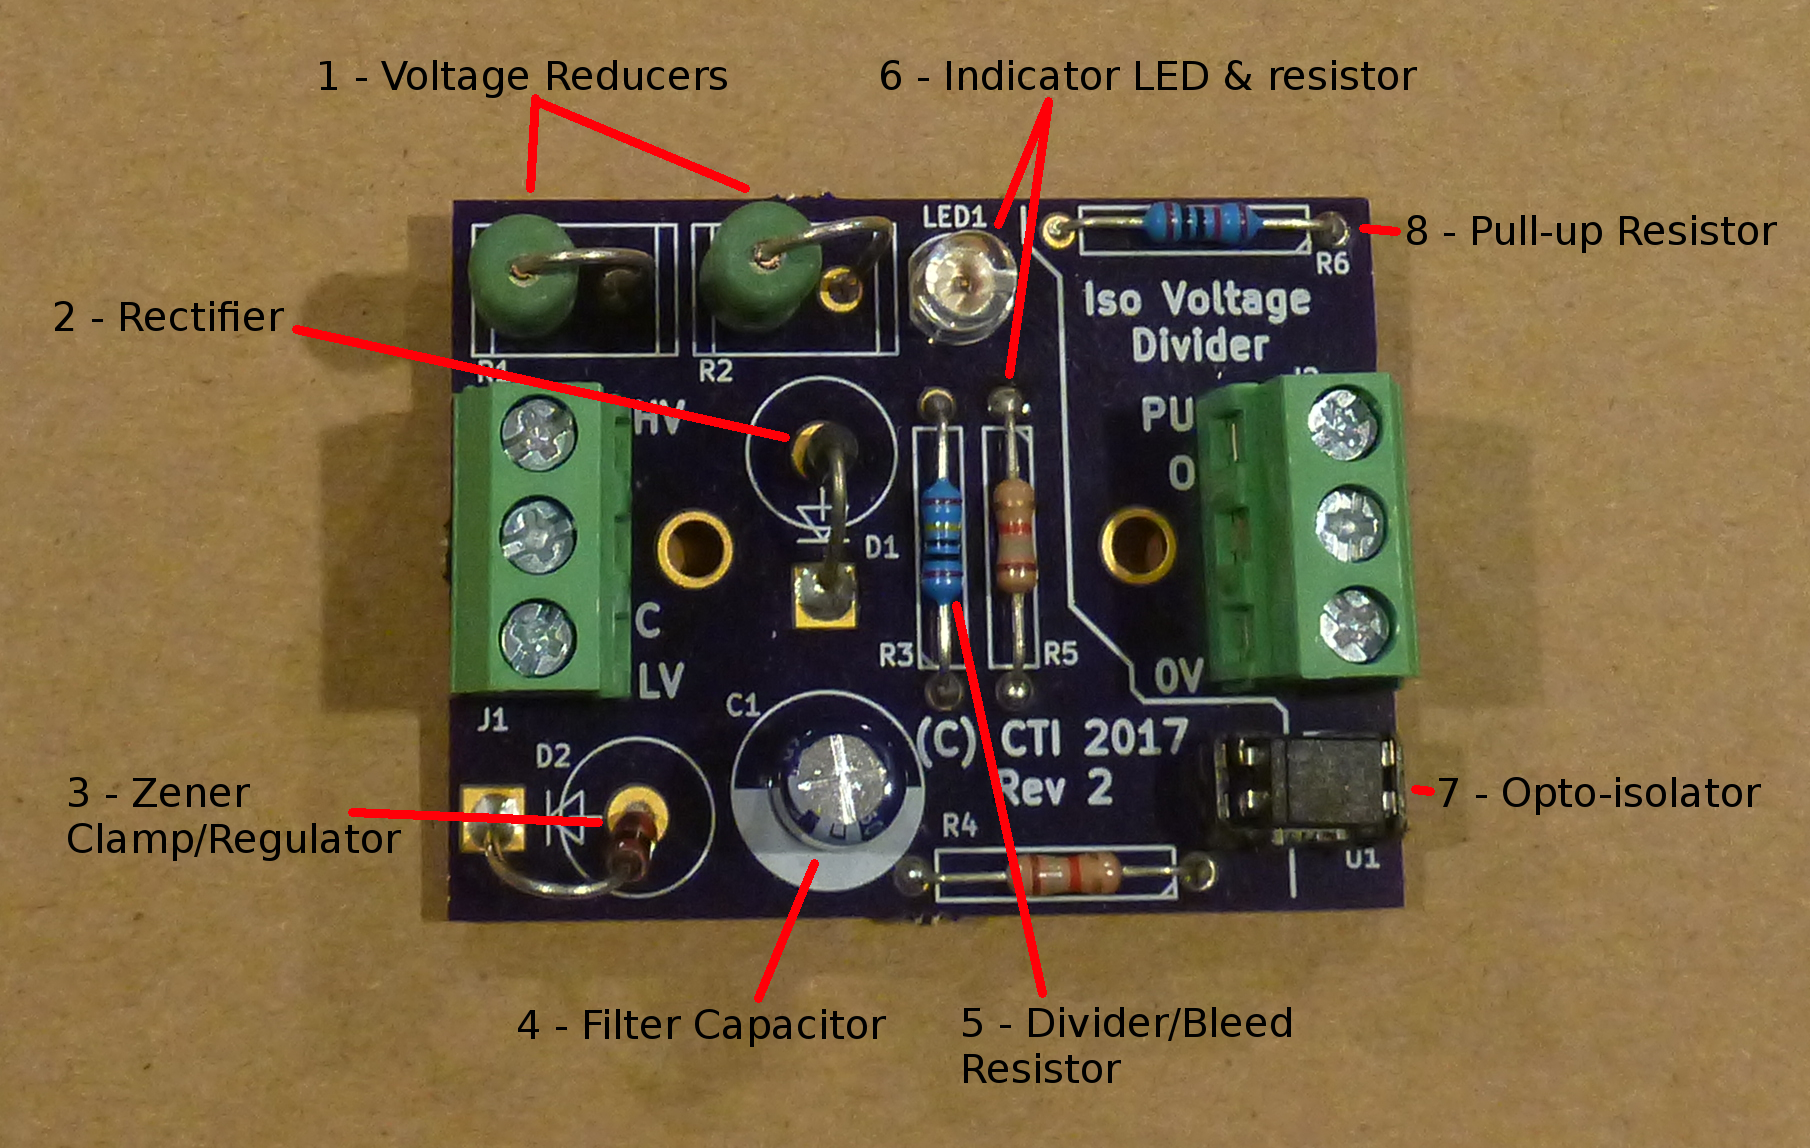 Versatile Voltage Divider Isolator Interface For Arduino Opto Circuit If You Just Want To See How It Works And Make One Yourself Here Is The Schematic Values Will Vary Not All Components Are Needed Depending On